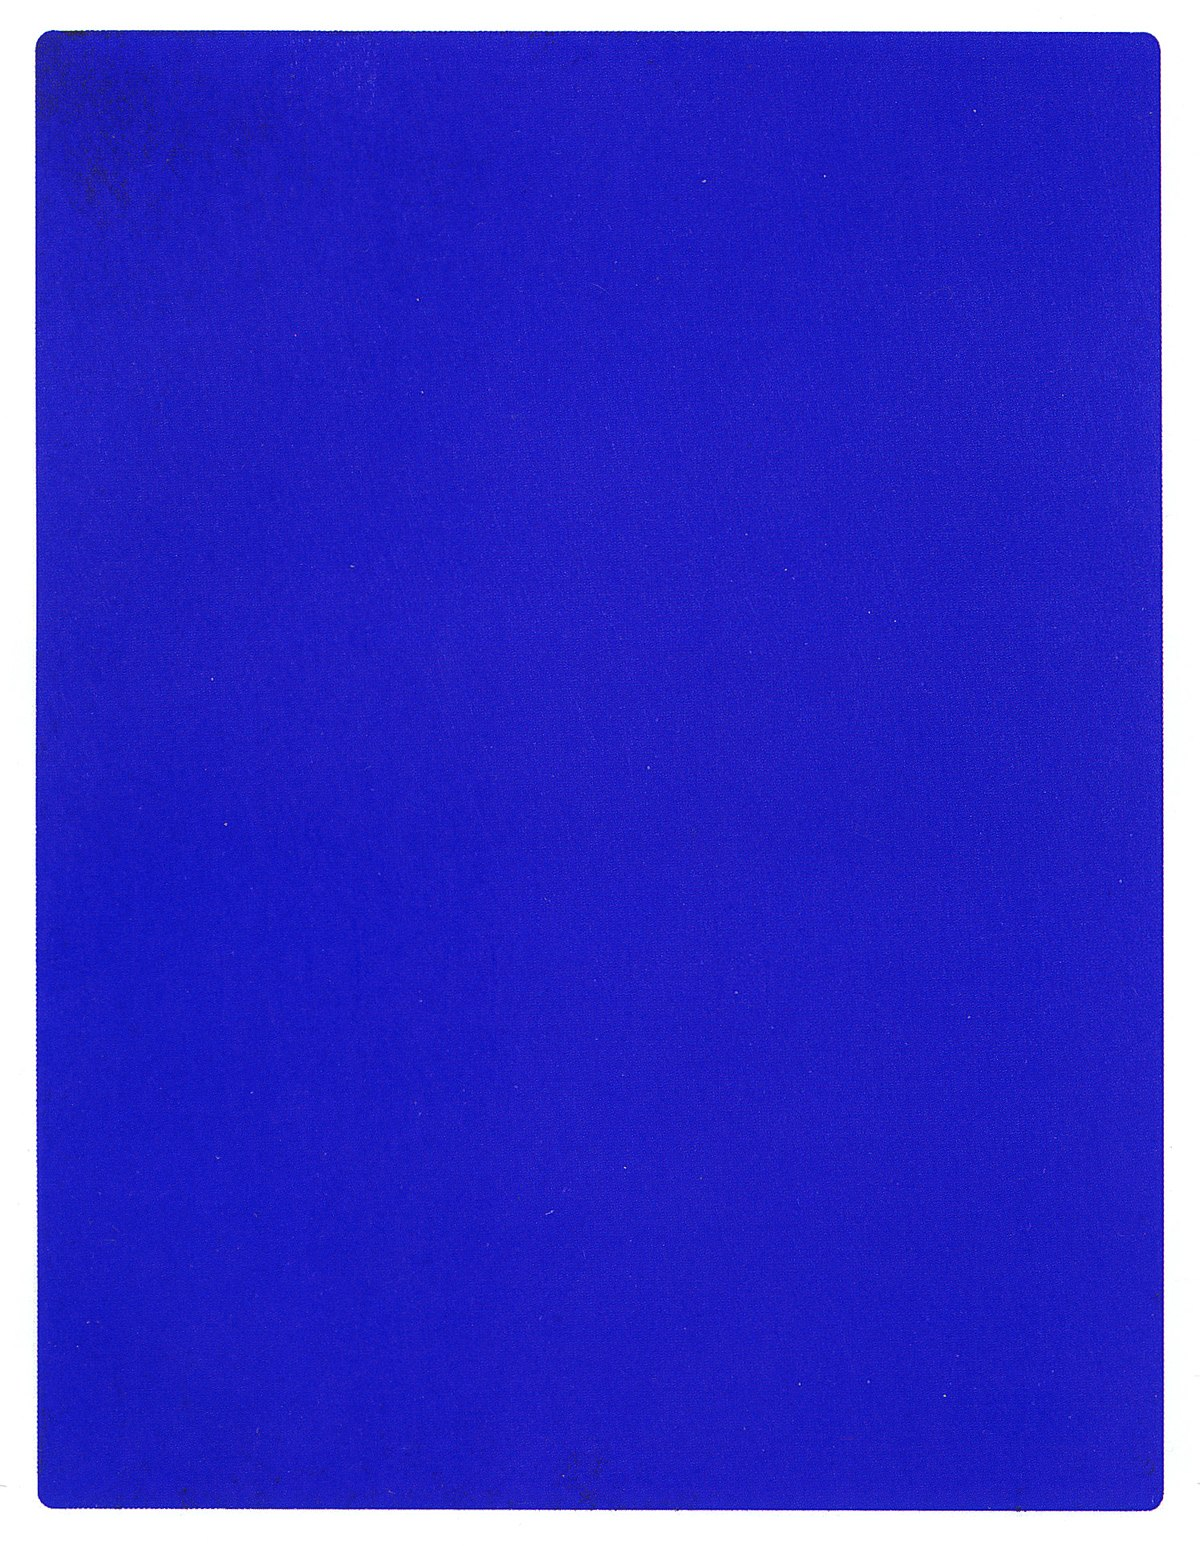 international klein blue wikipedia. Black Bedroom Furniture Sets. Home Design Ideas